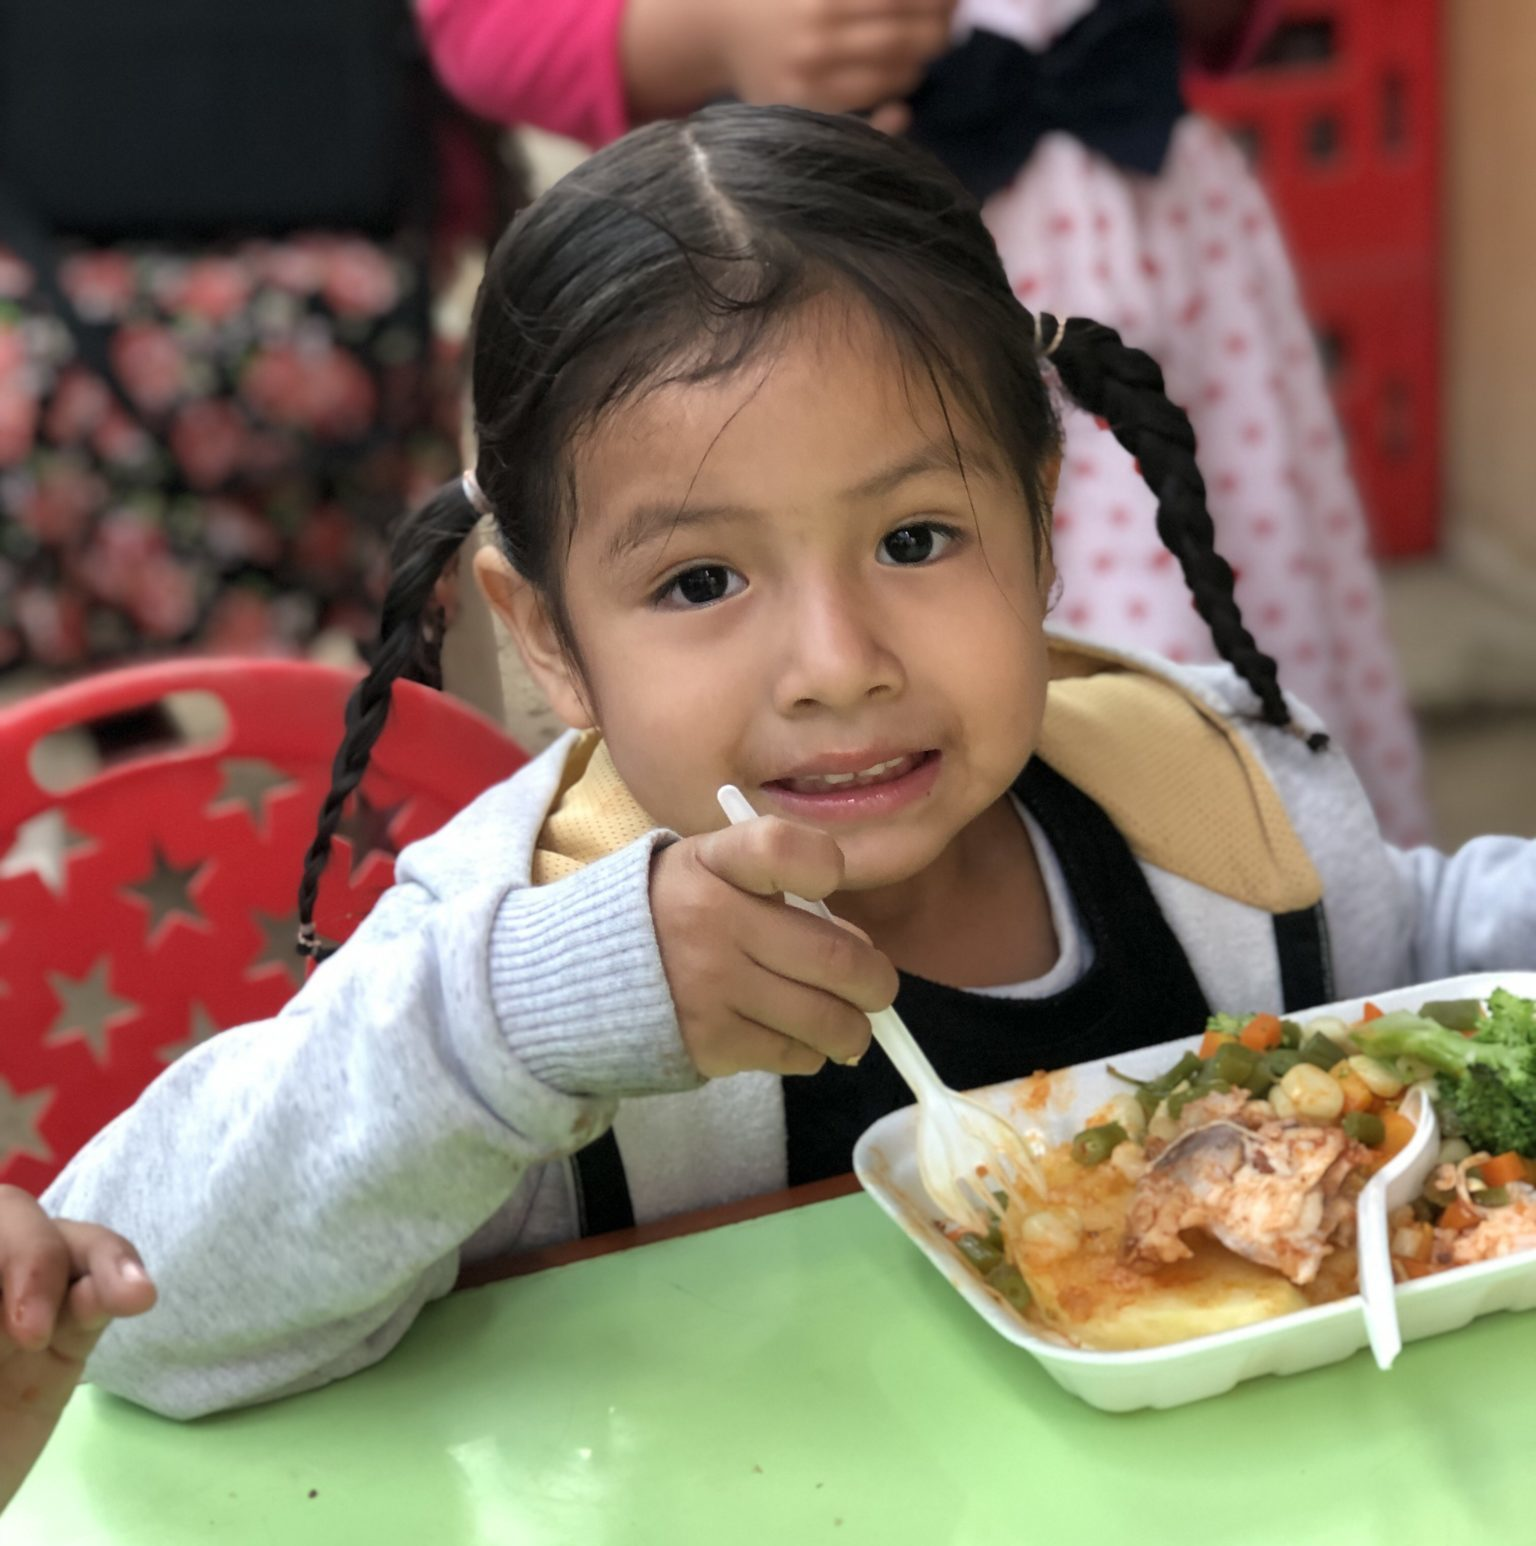 hope centers provide a place for children to eat